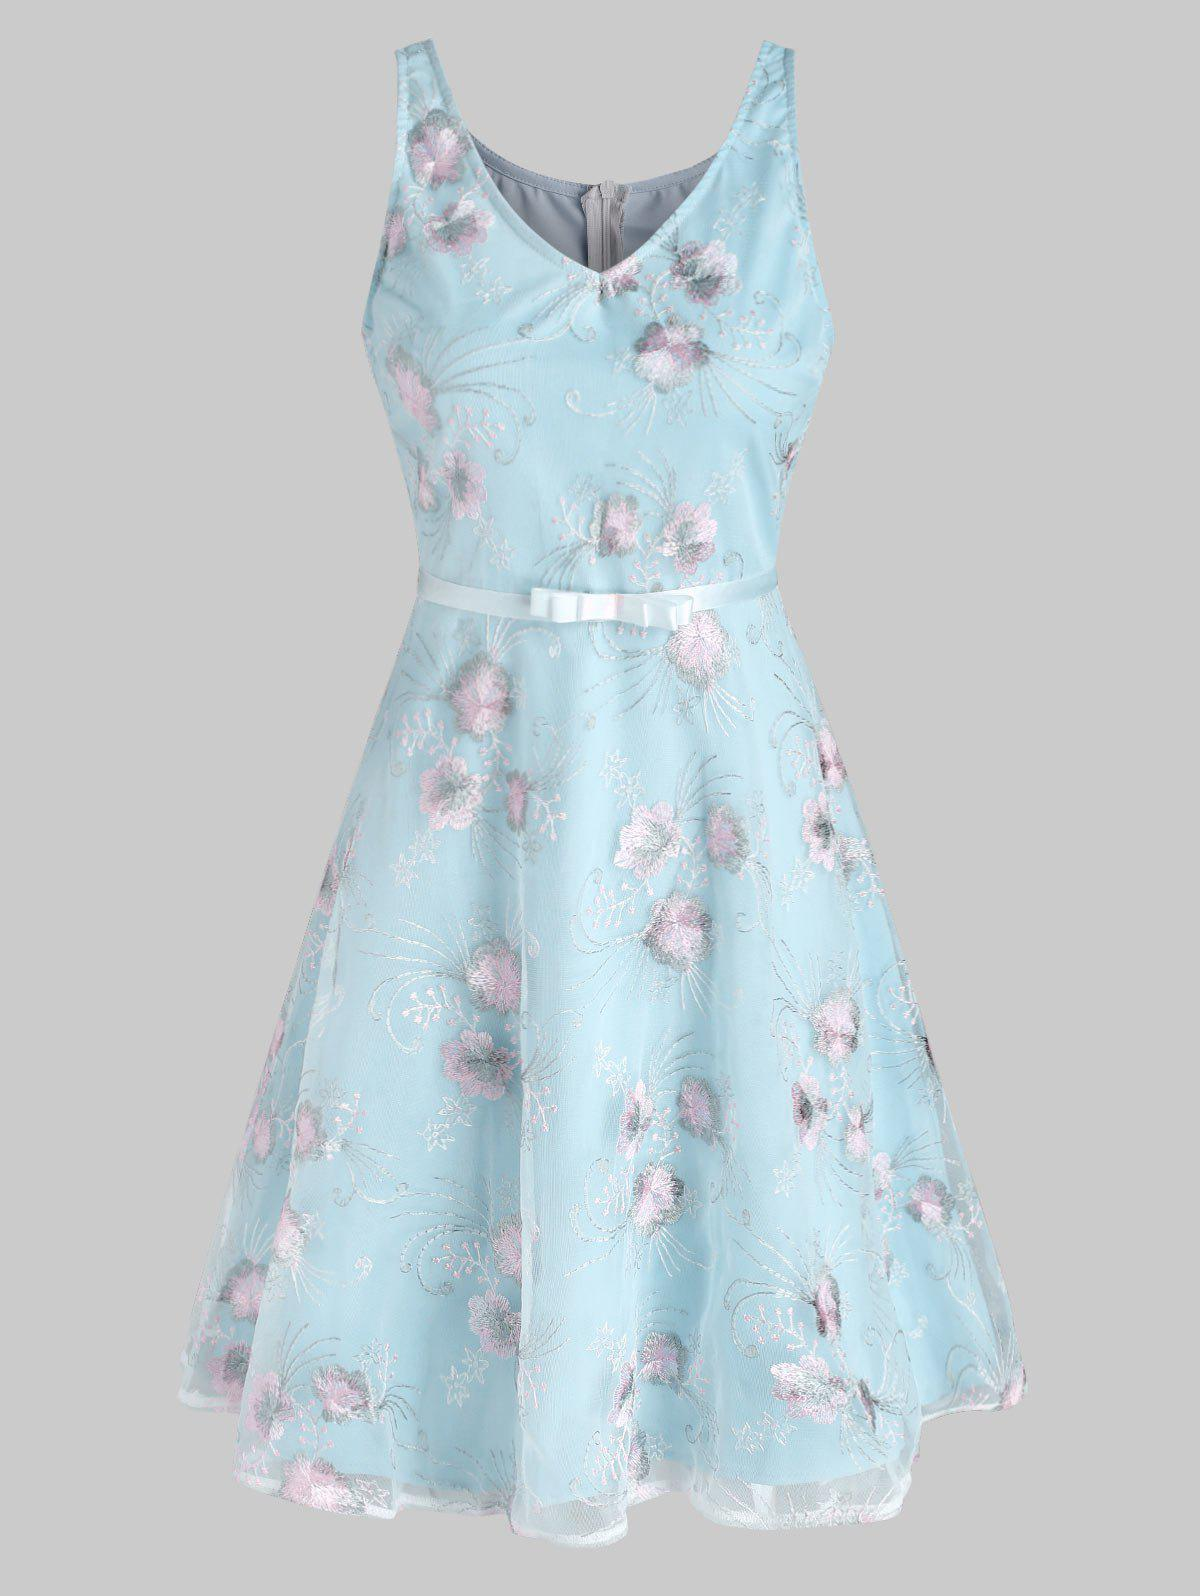 Lace Flower Embroidery Ribbon Belted A Line Dress - LIGHT BLUE 2XL